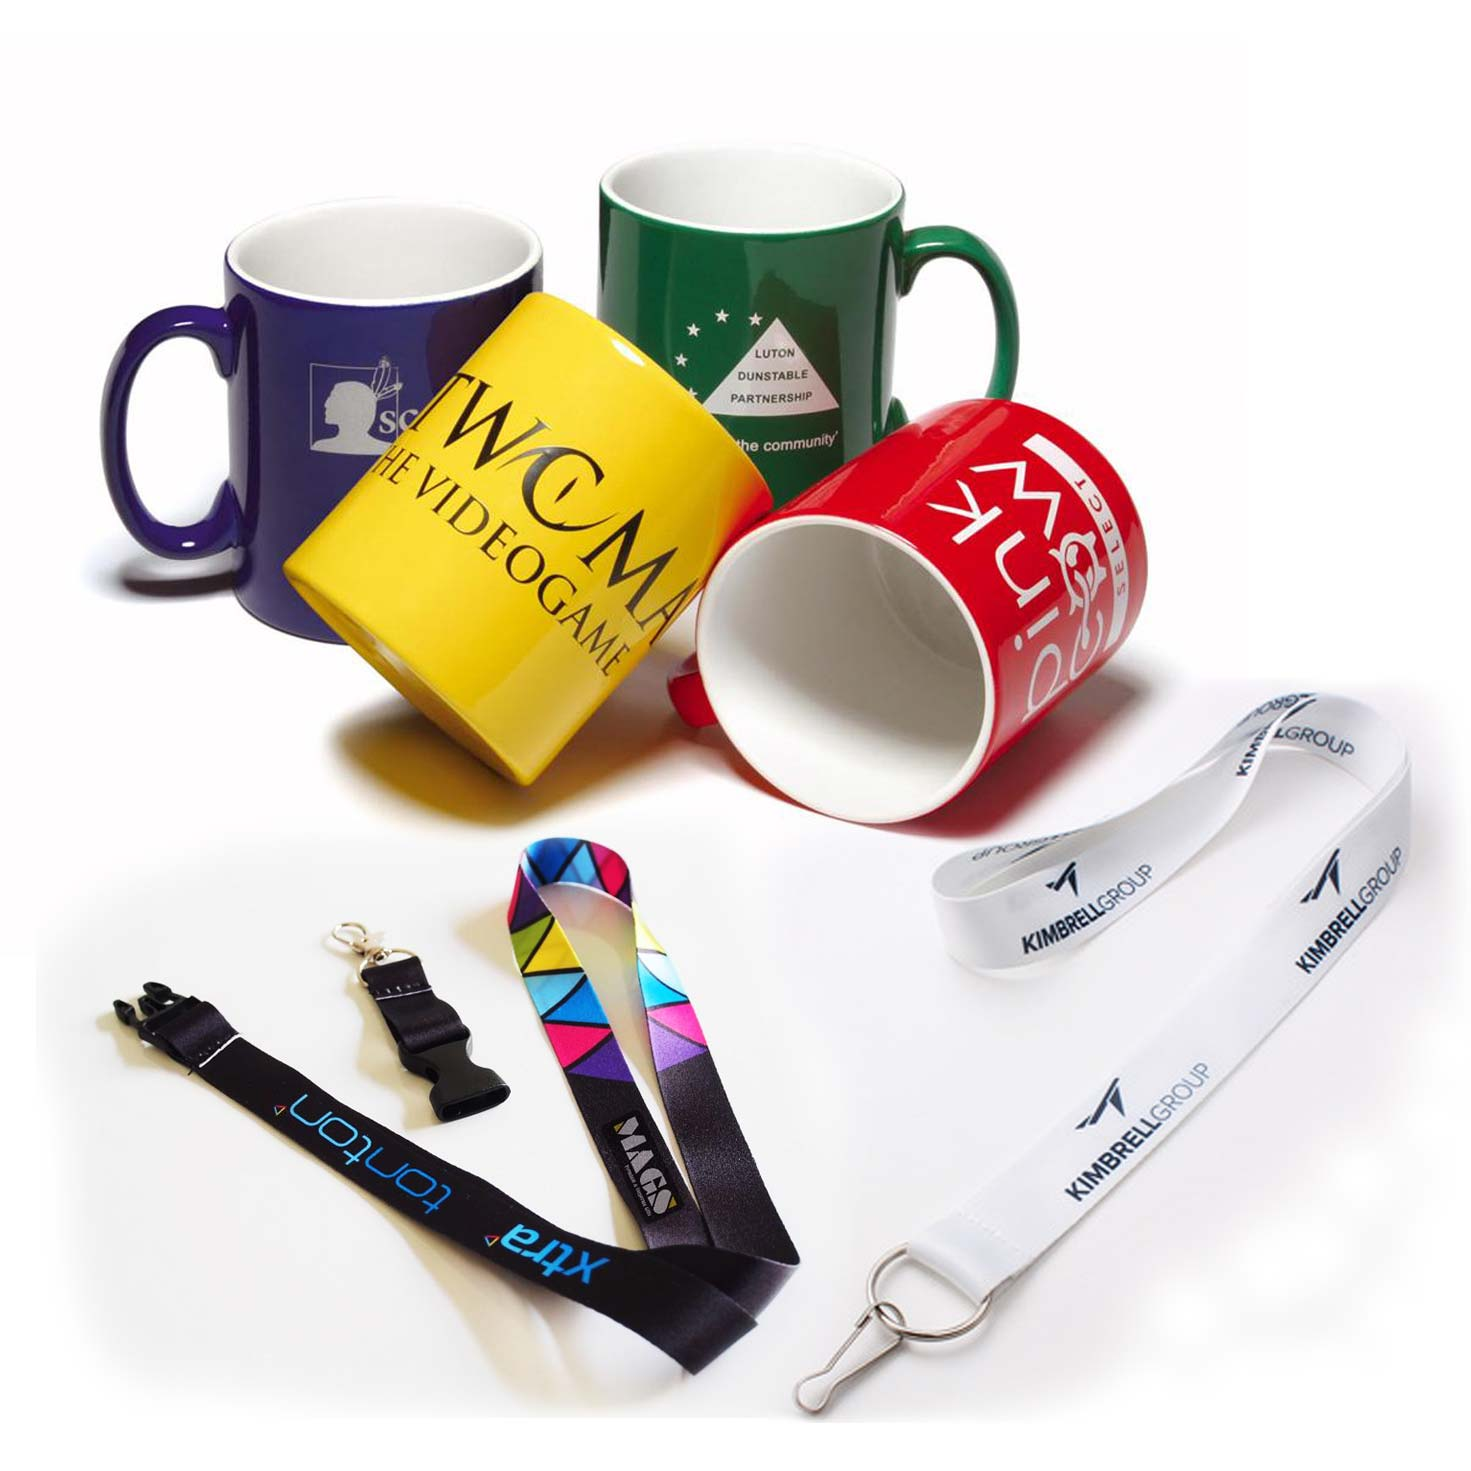 Uniforms supplier | Corporate gifts supplier | Pacific Qatar